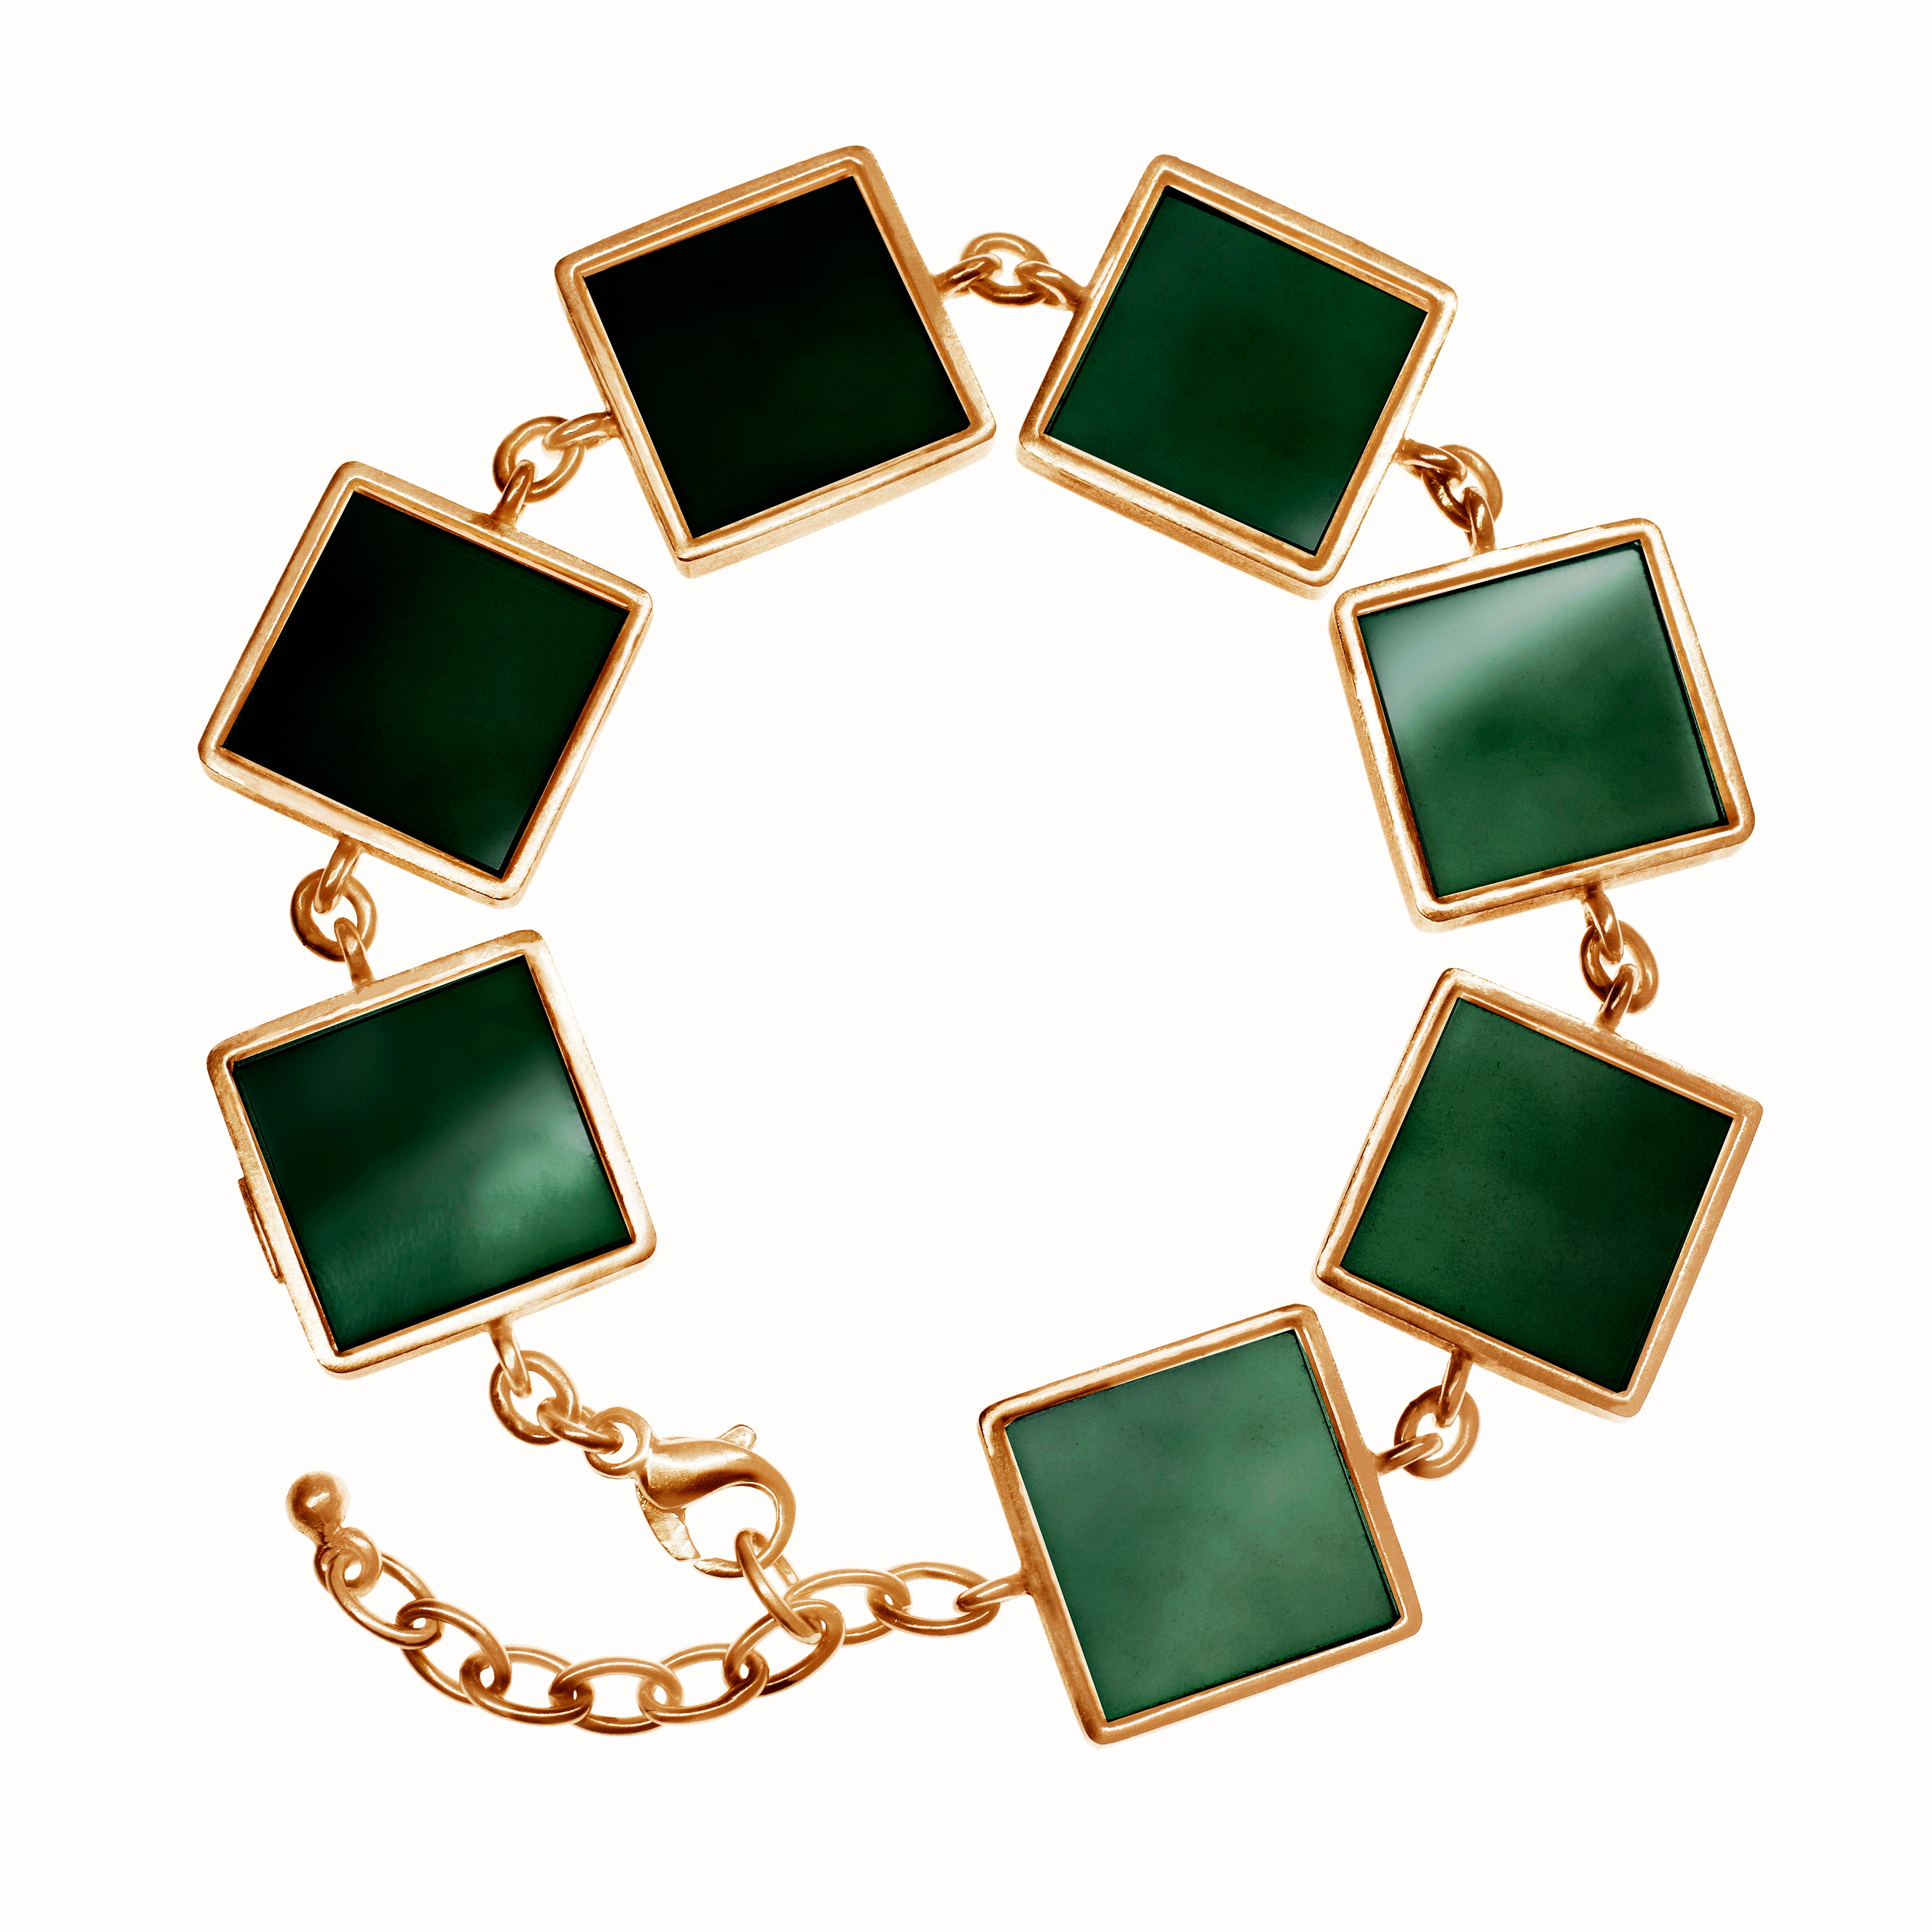 Rose Gold-Plated Silver Art Deco Bracelet with Green Quartzes, Featured in Vogue